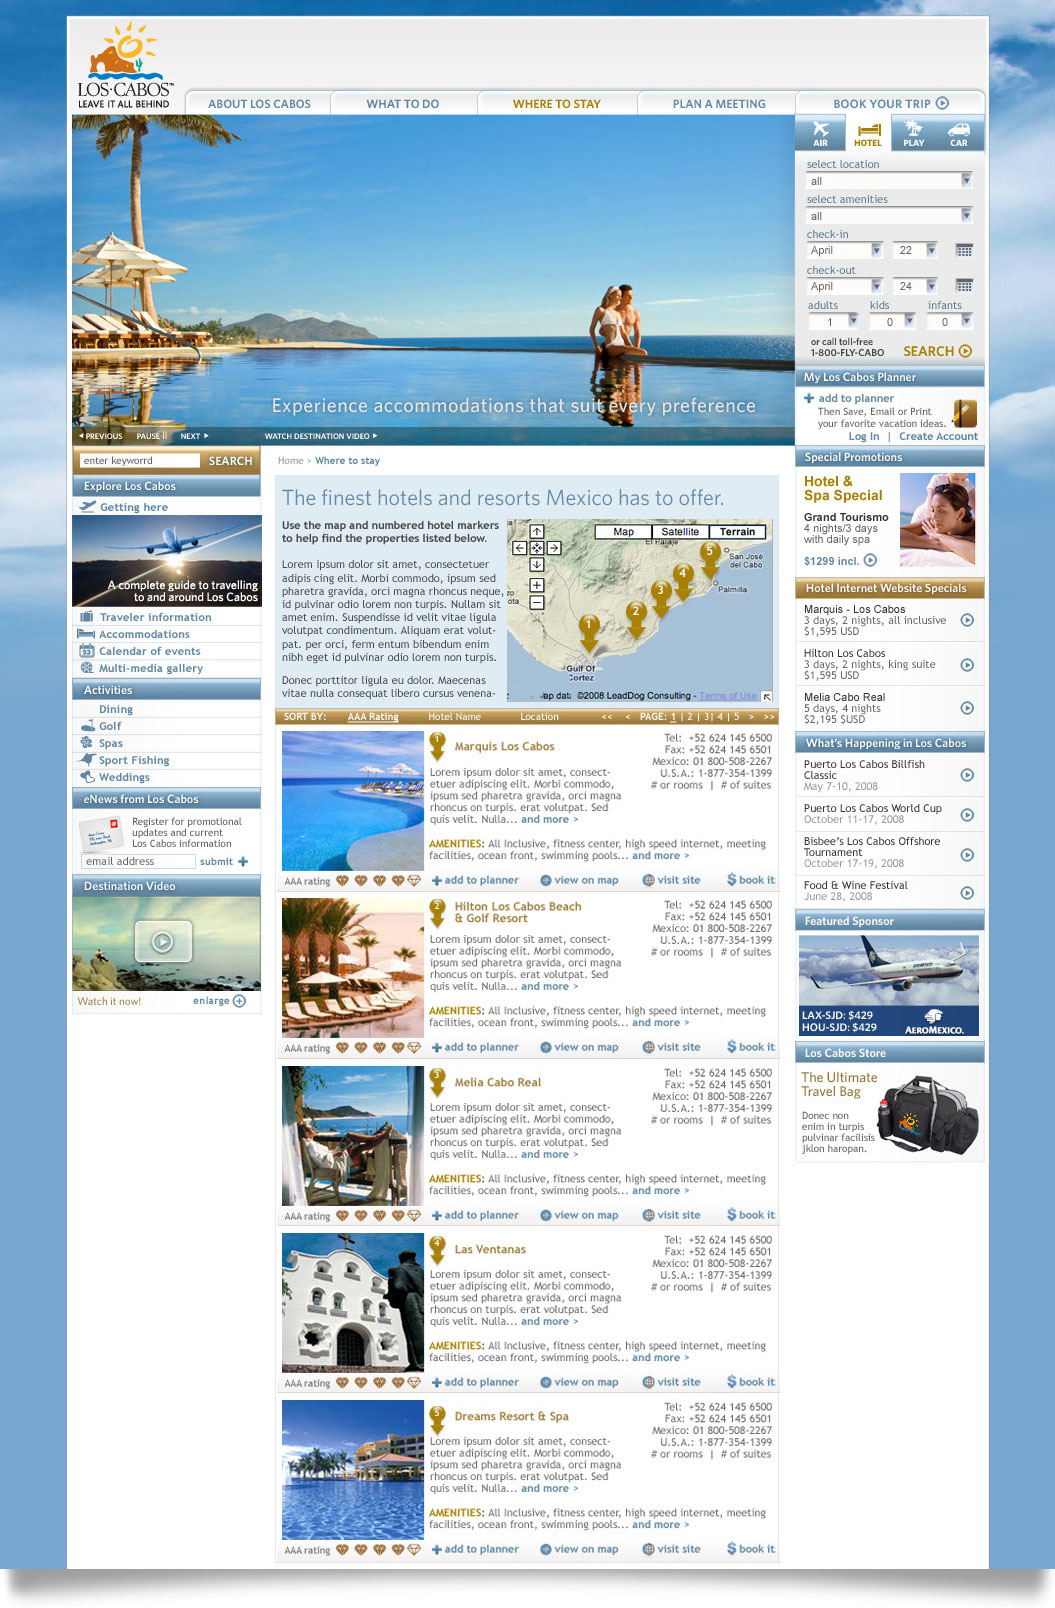 Los Cabos online where to stay